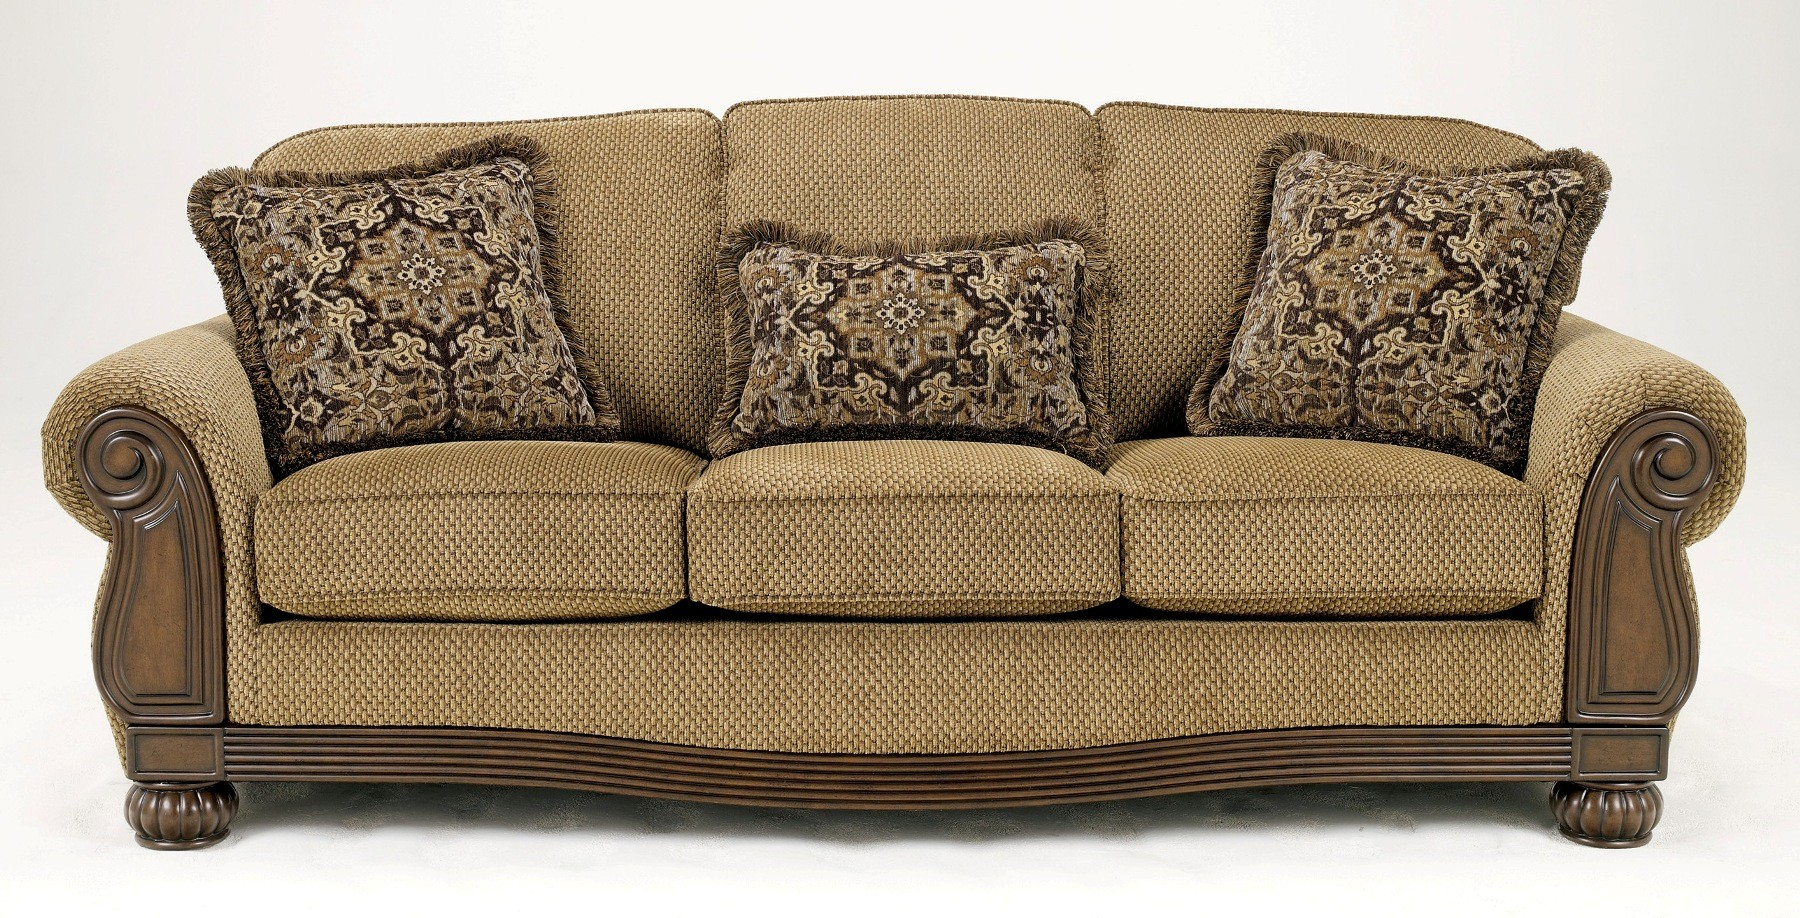 Ashley Lynnwood Amber Queen Sofa Sleeper - 6850039 - Furniture